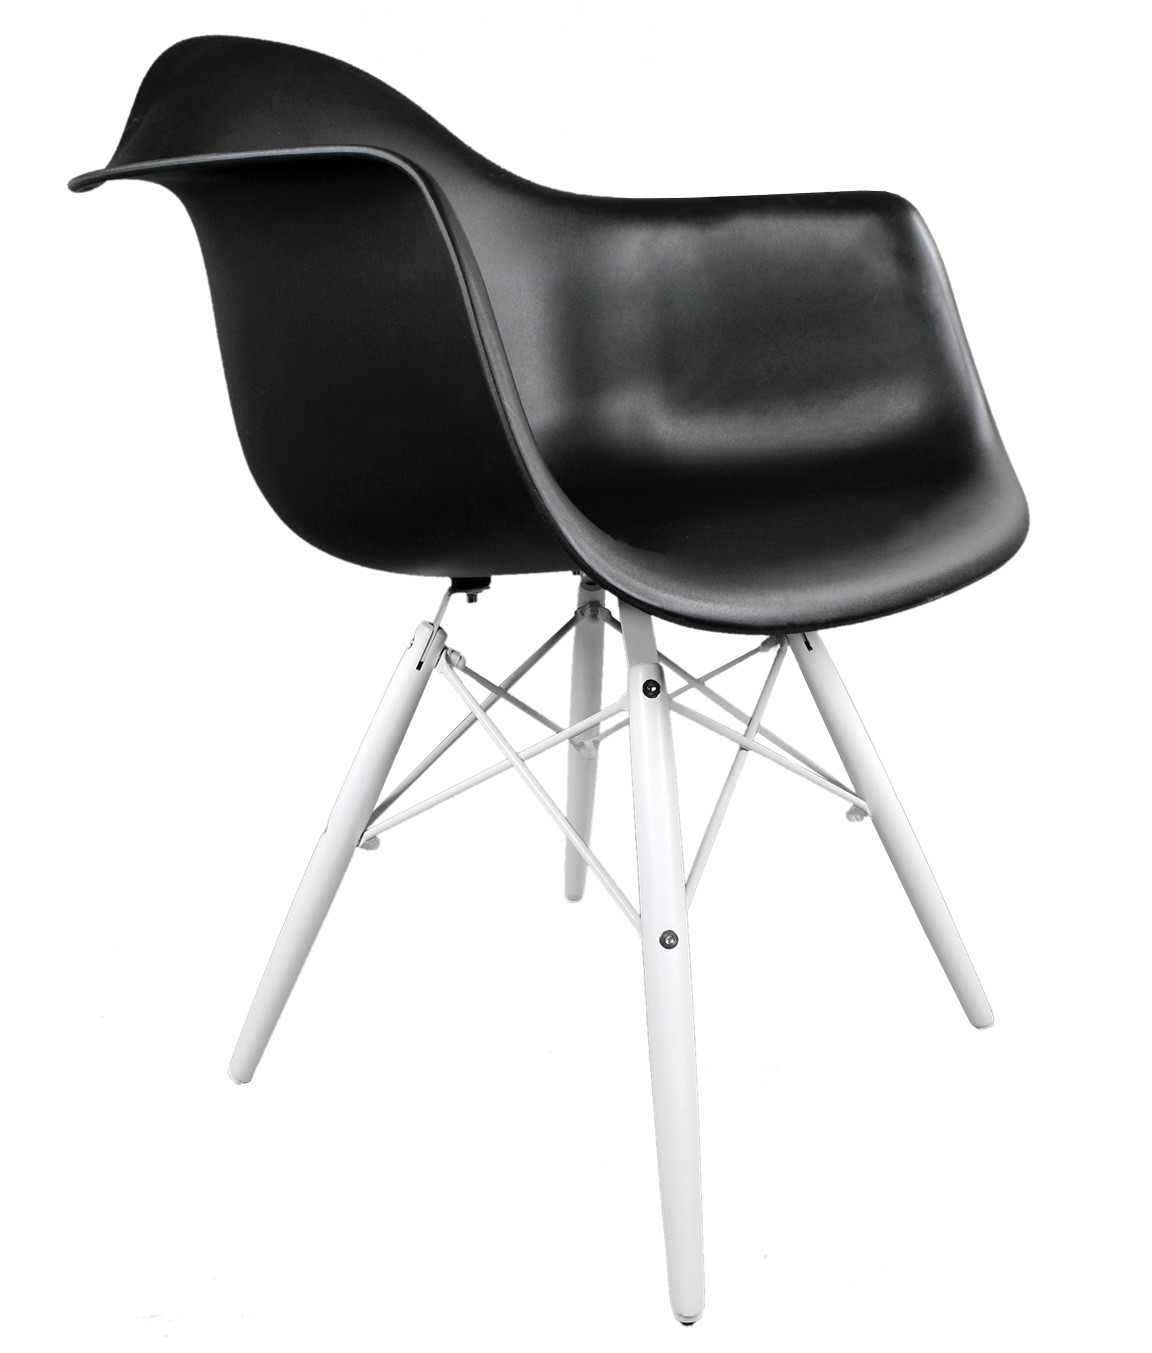 Superb img of  DAW Molded Black Plastic Accent Arm Chair with White Wood Eiffel Legs with #626269 color and 1152x1353 pixels